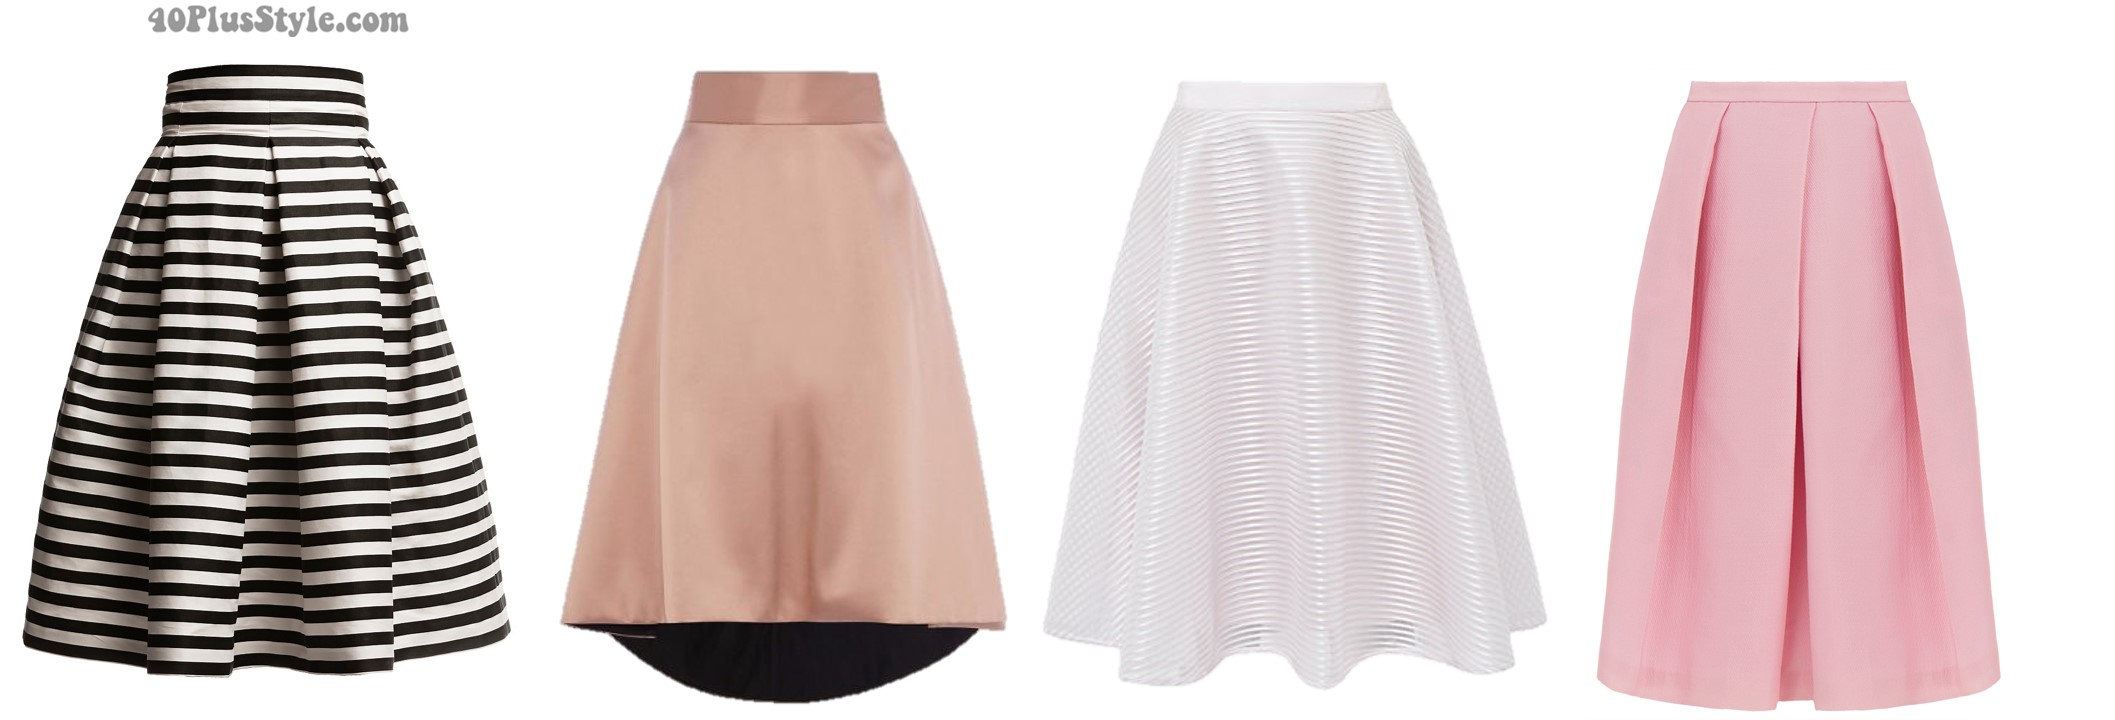 Inverted triangle body shape spring skirts looks a-line | 40plusstyle.com